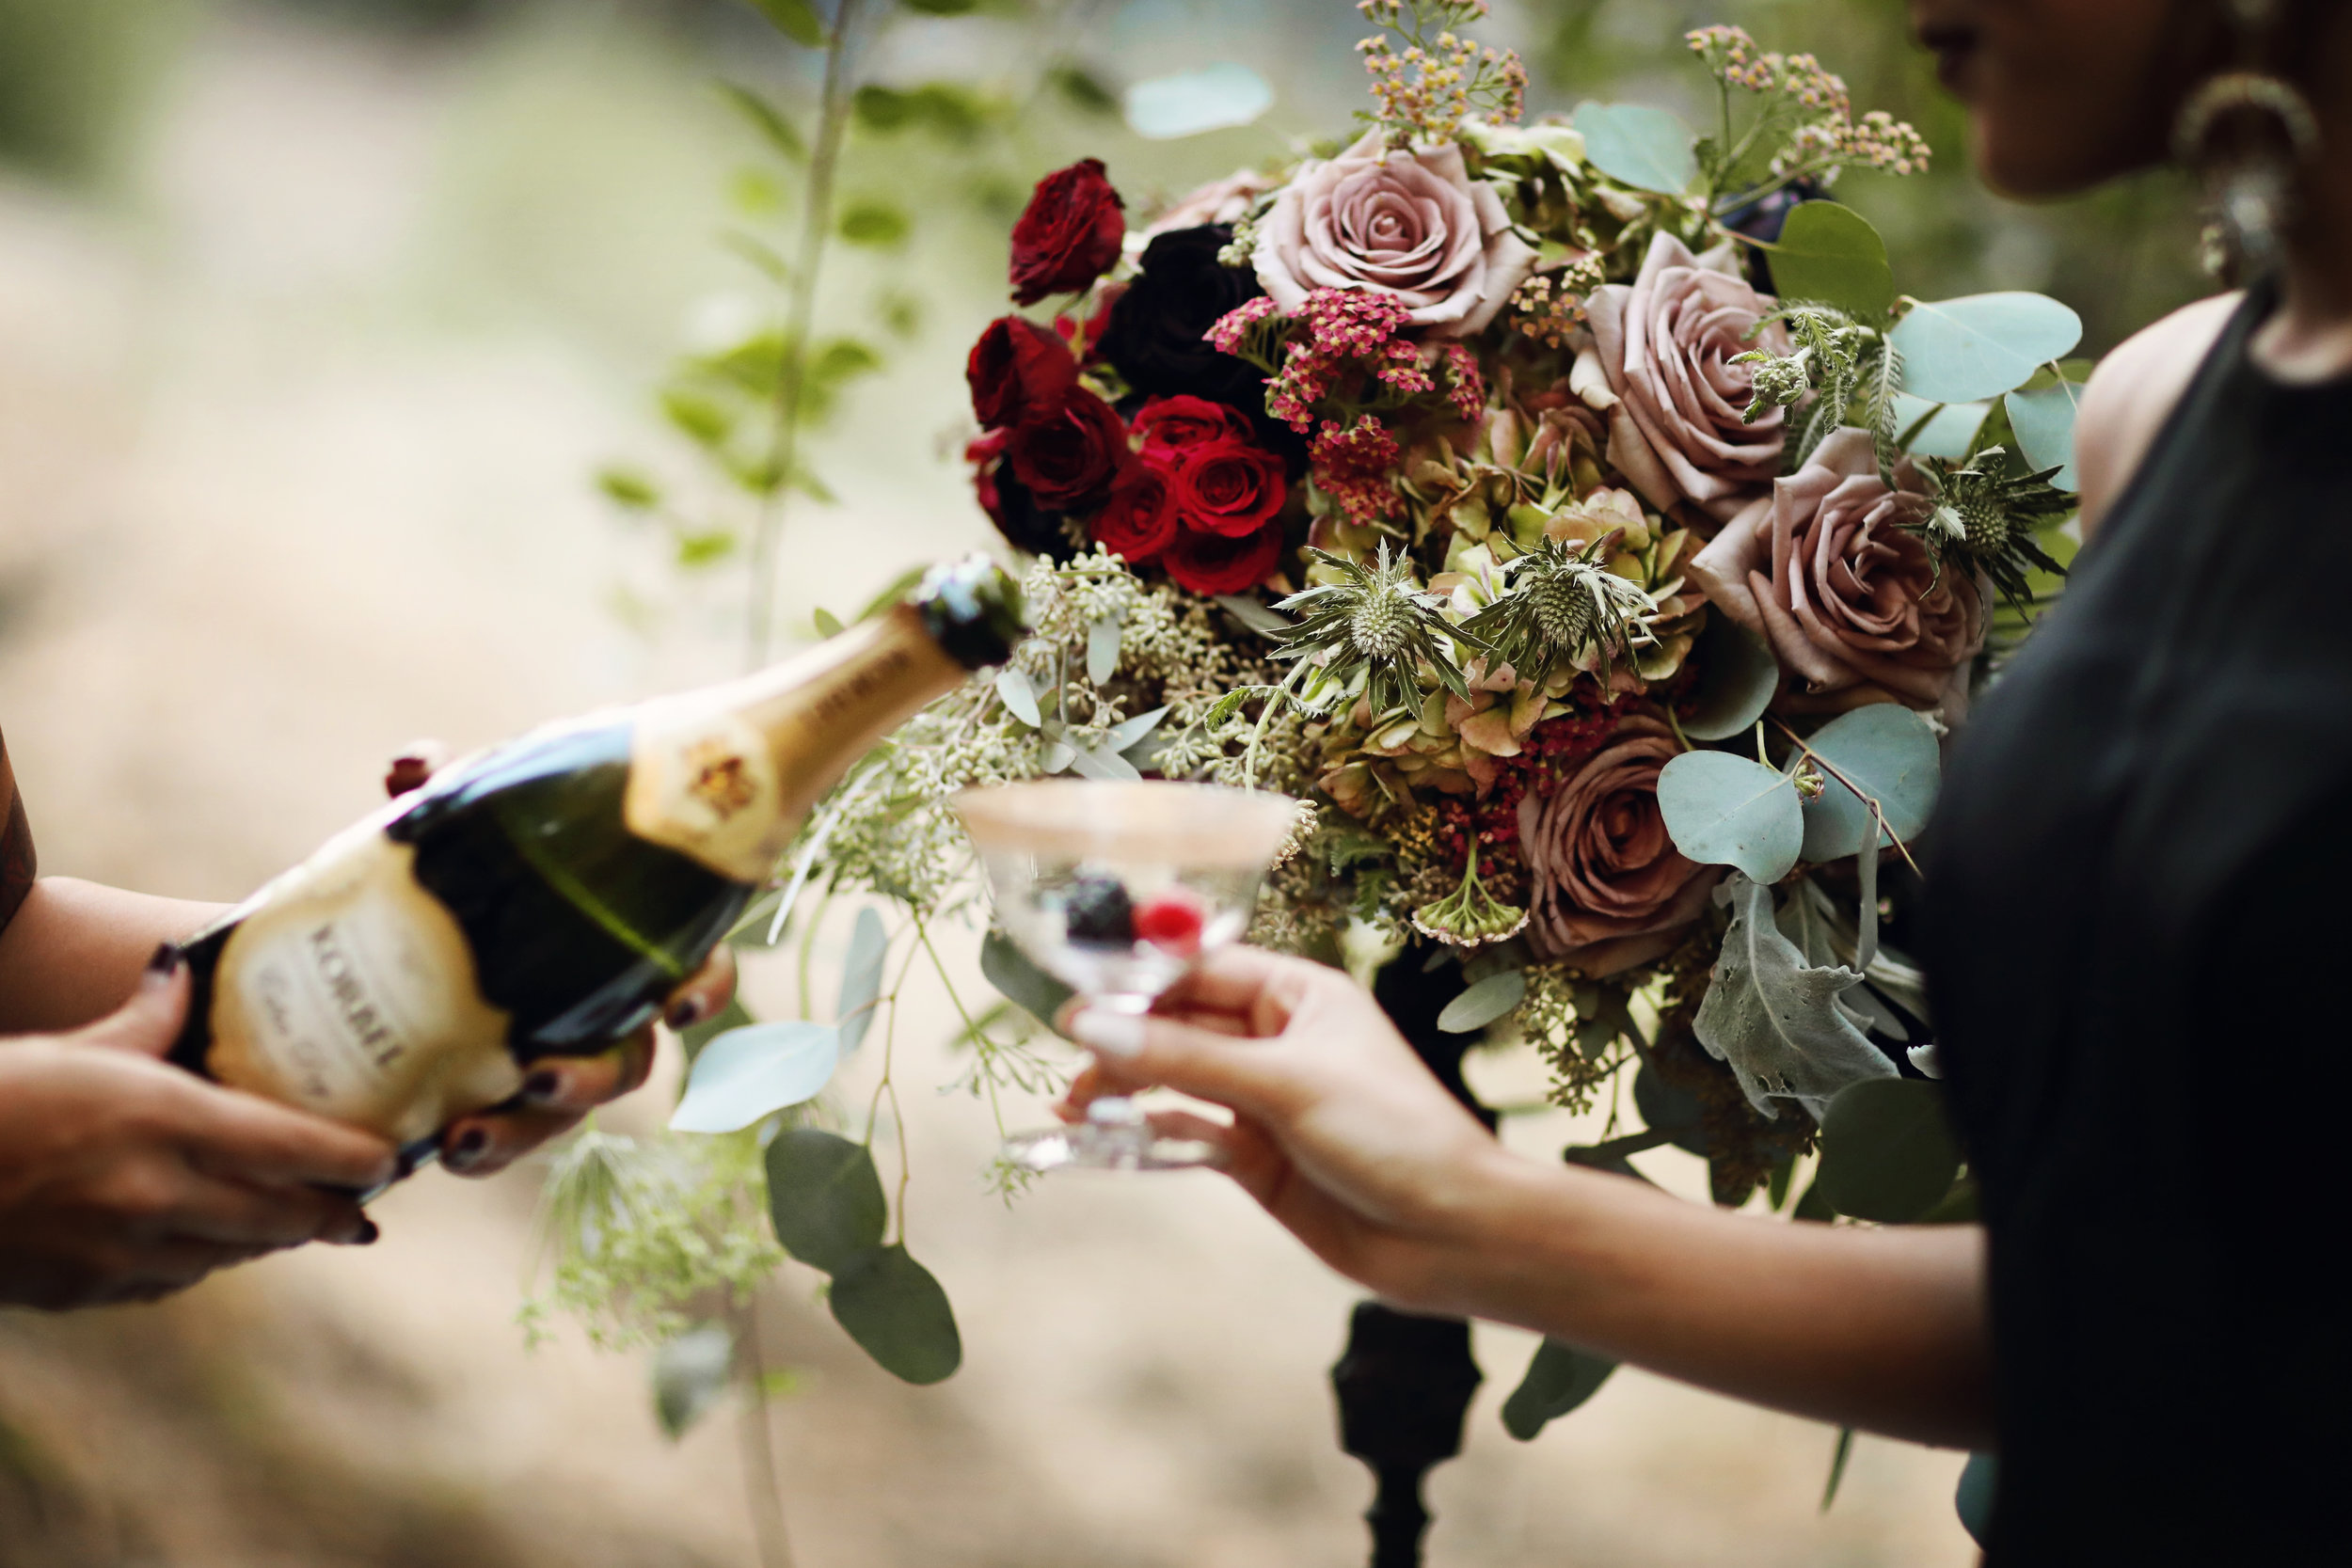 Floral centerpiece with black dahlias, gold rimmed champaign goblets from Birdie in a Barn.